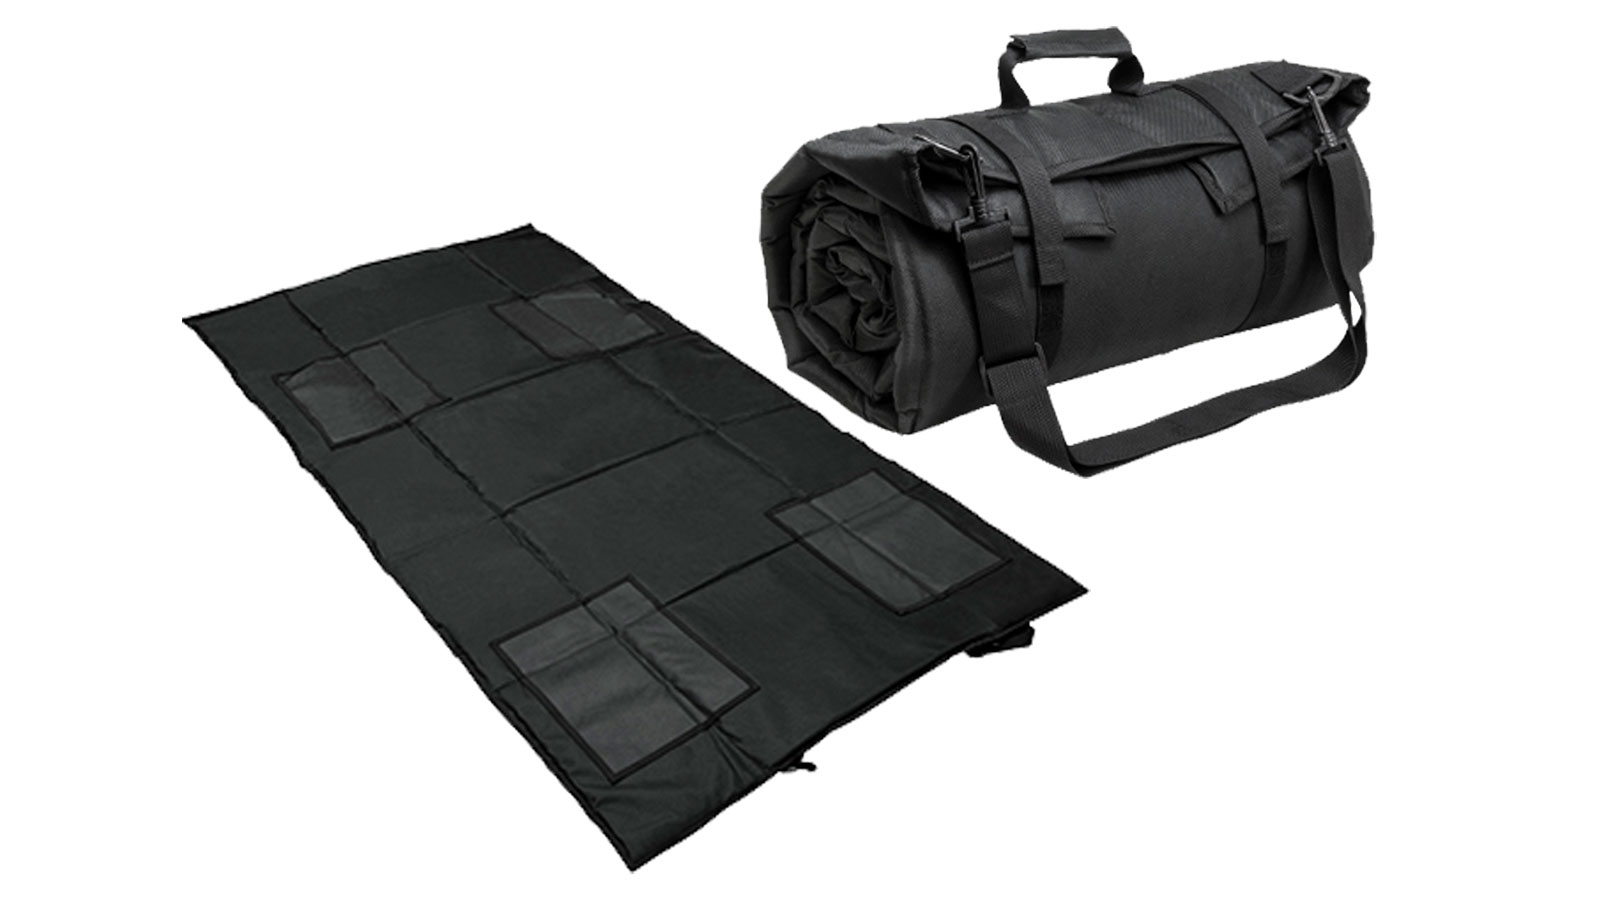 NCStar CVSHMR2957B Roll Up Shooting Mat Black